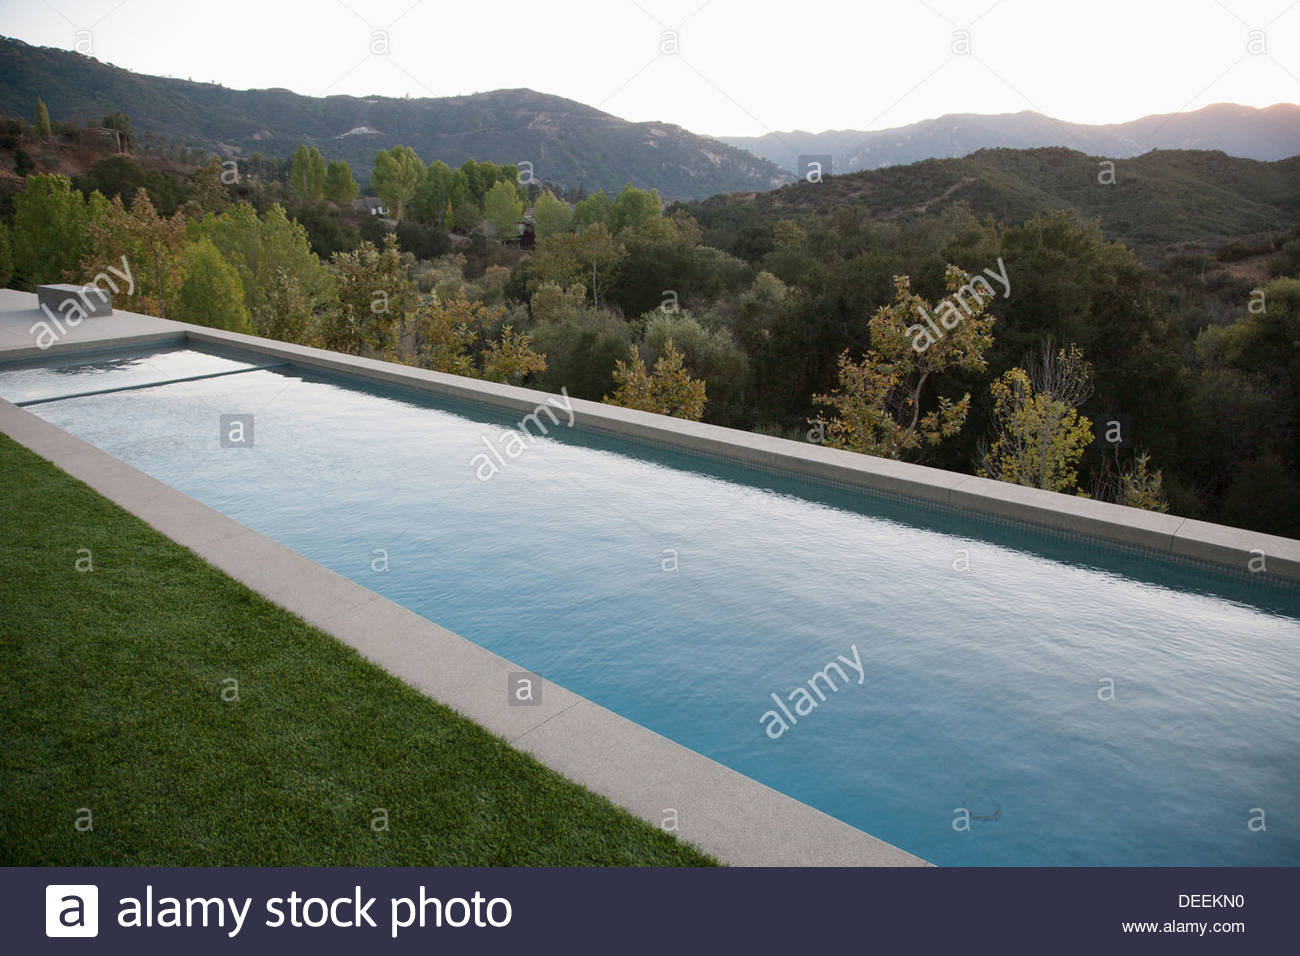 Swimming pool and distant hills - Stock Image